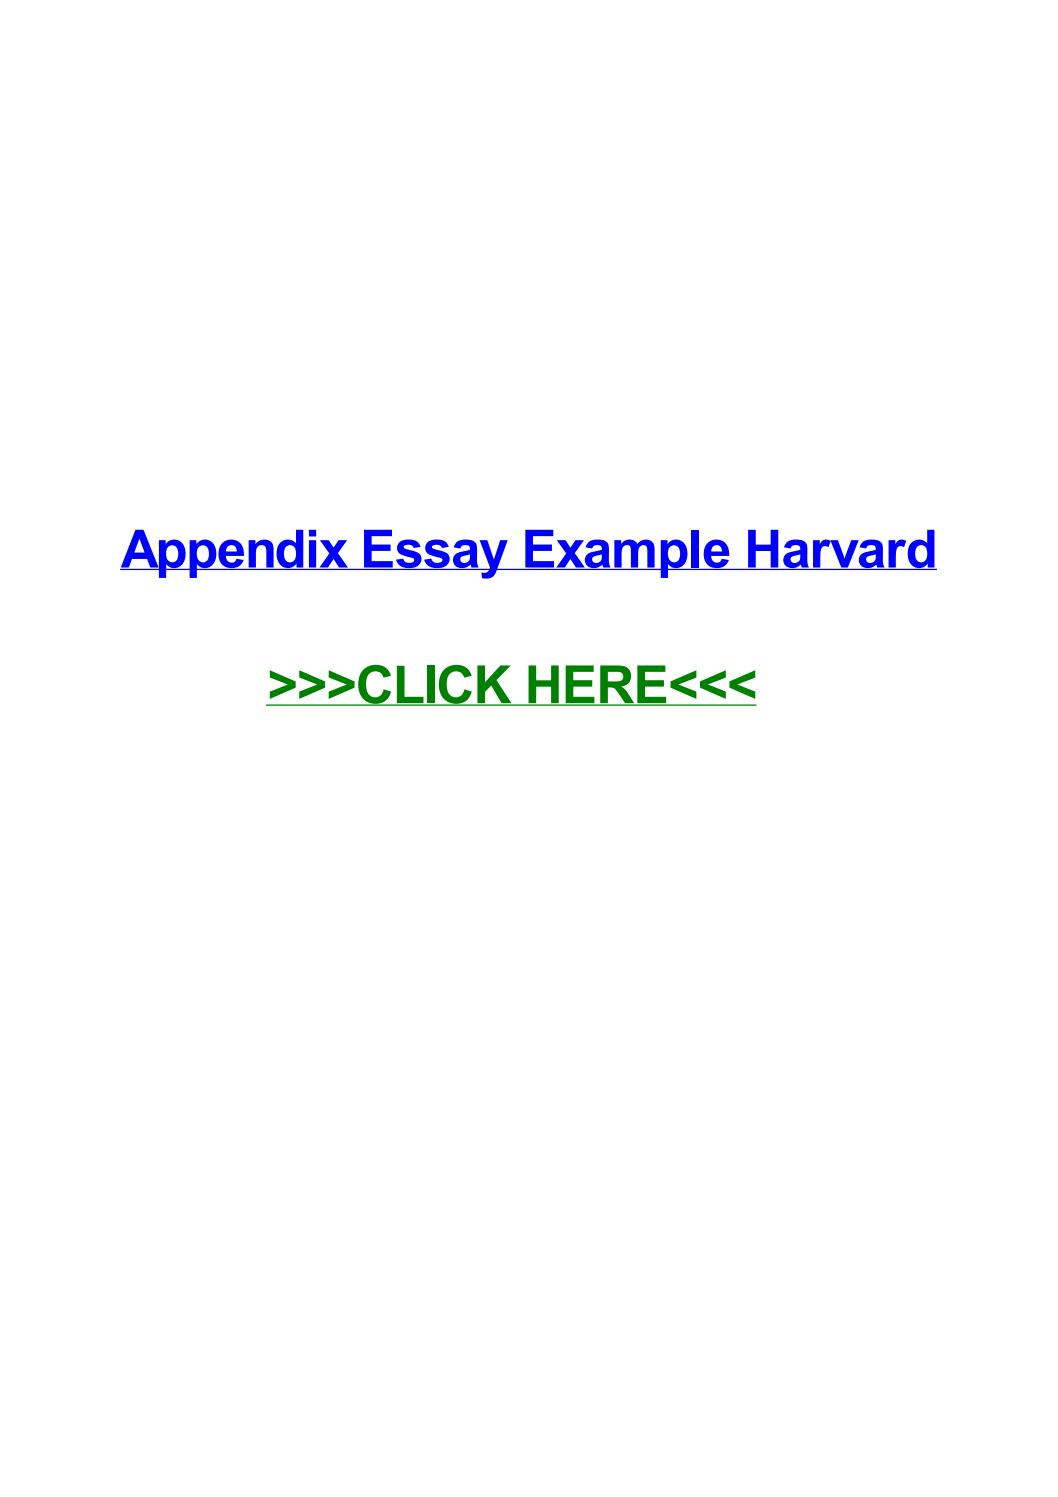 009 Essay Example Appendix Page 1 Remarkable Harvard Meaning History Full